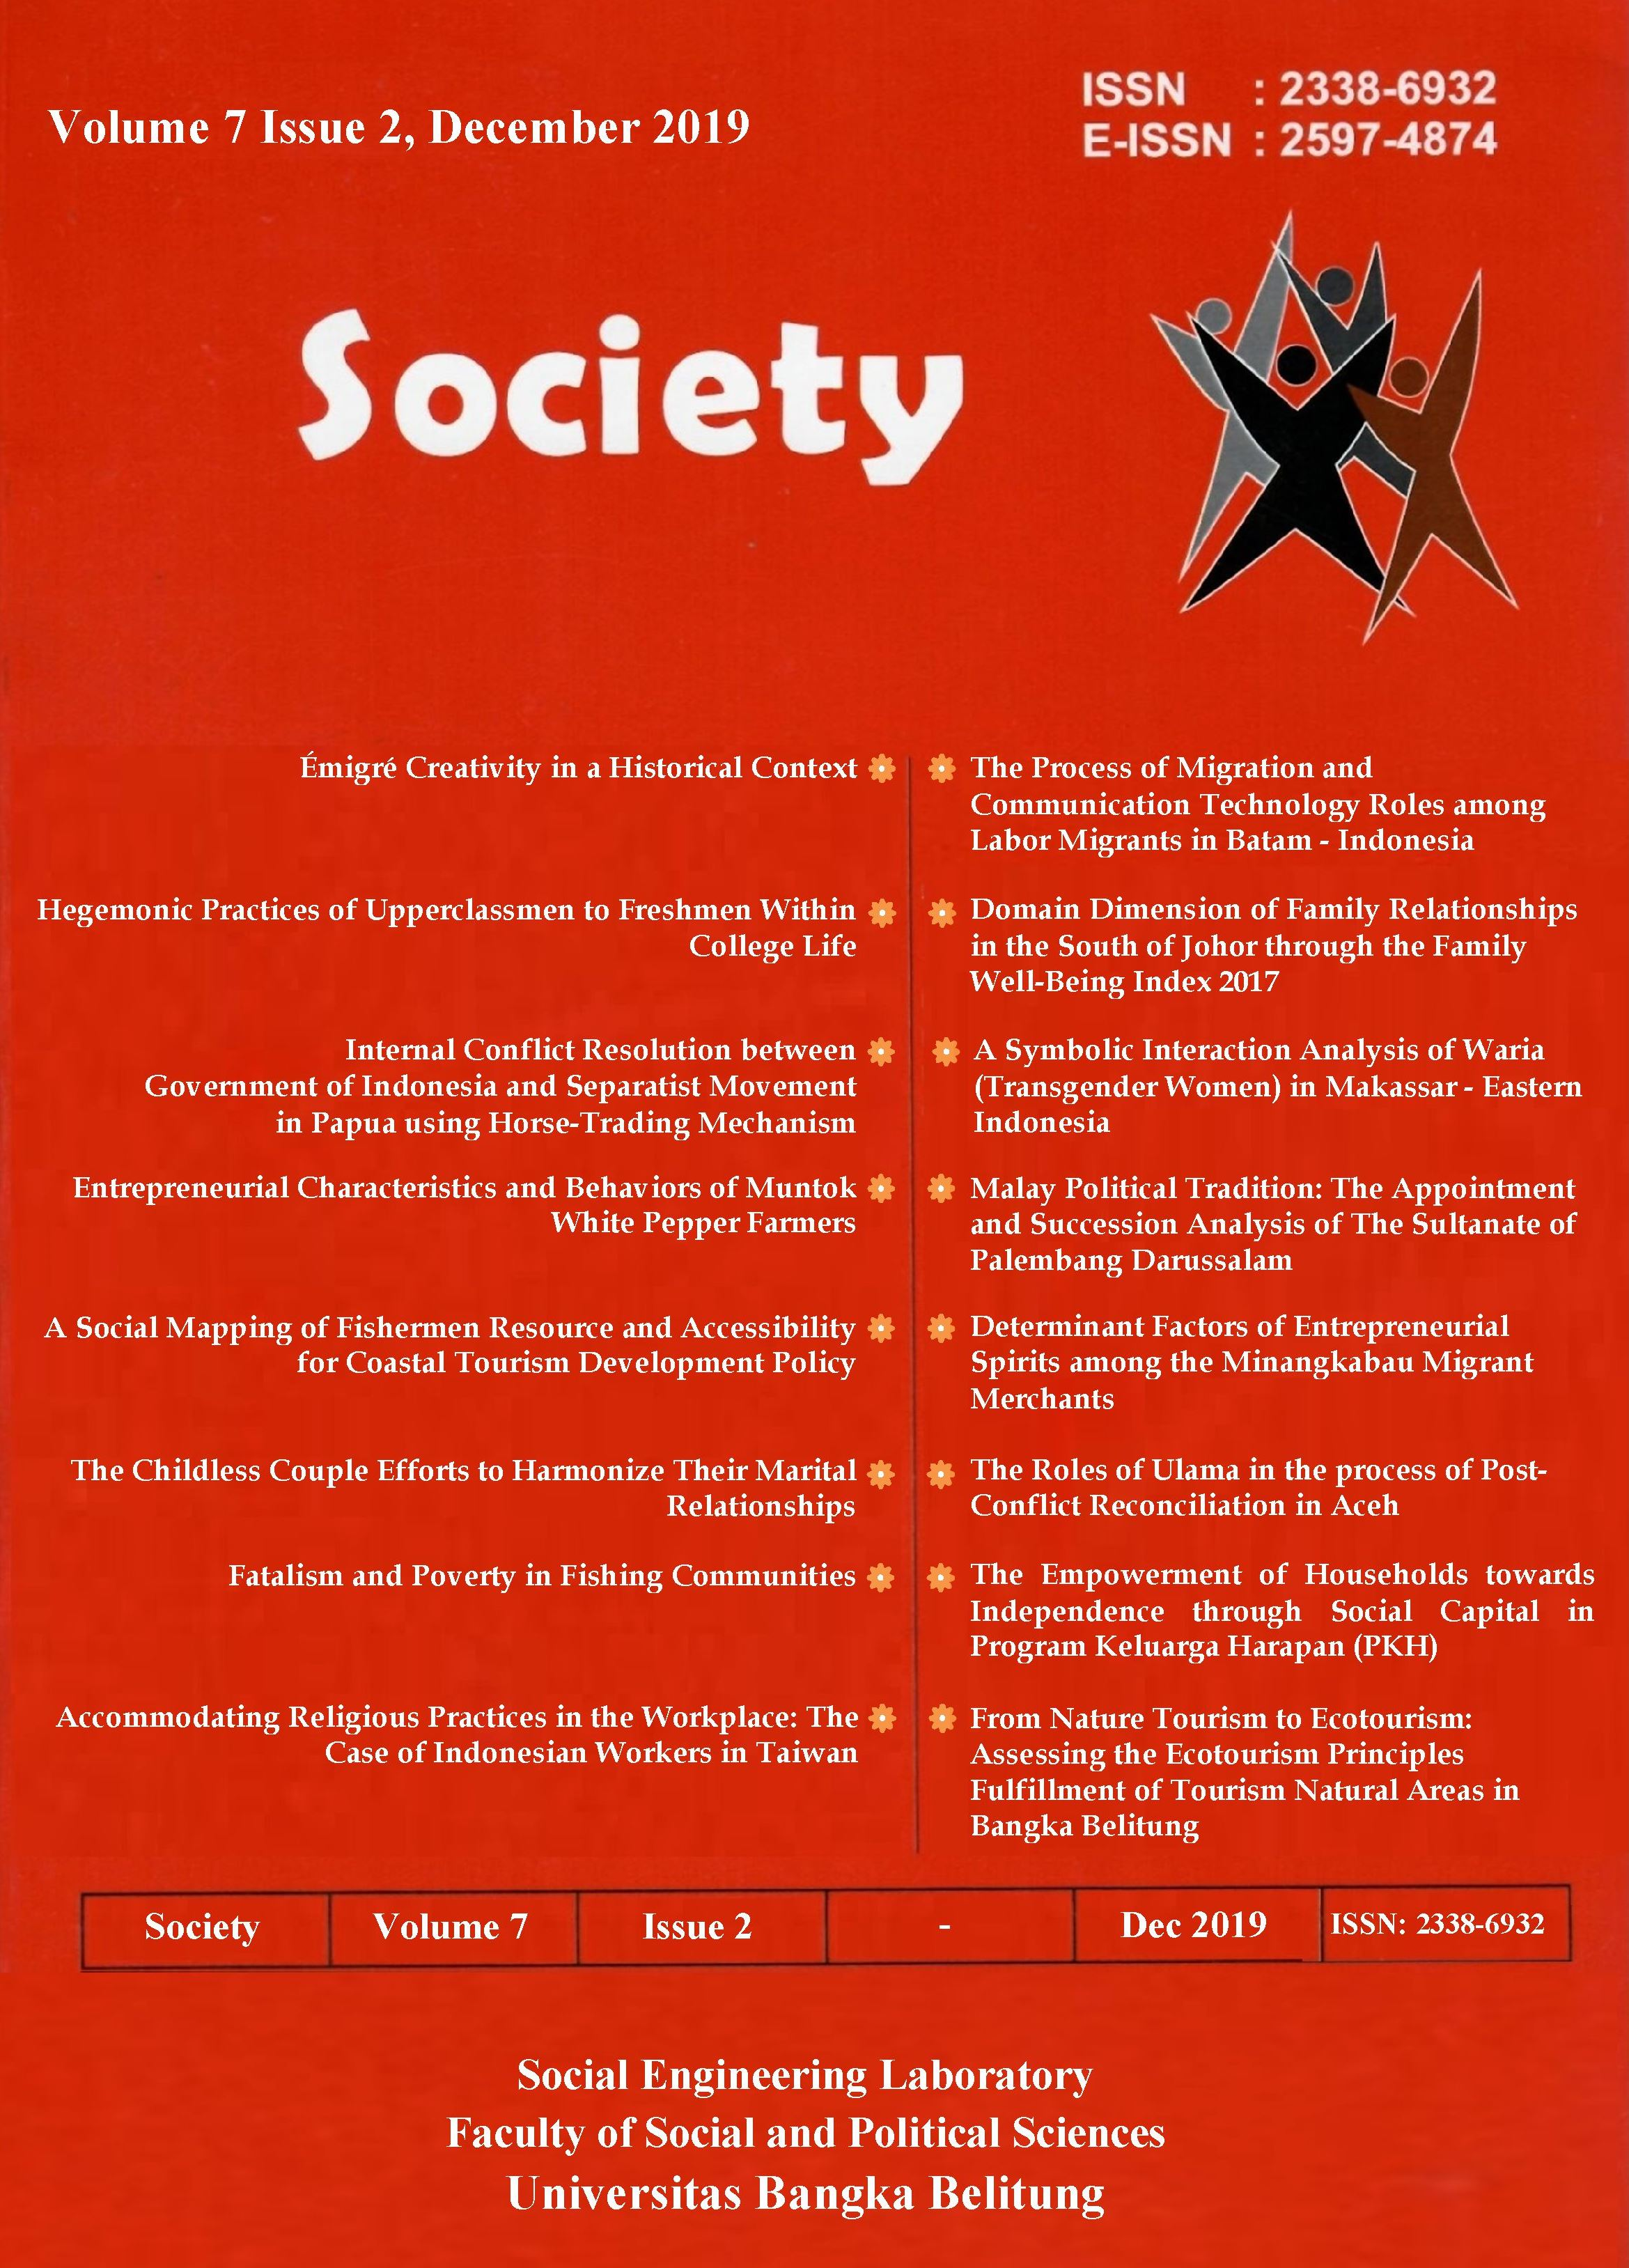 Society Volume 7 Issue 2#2019